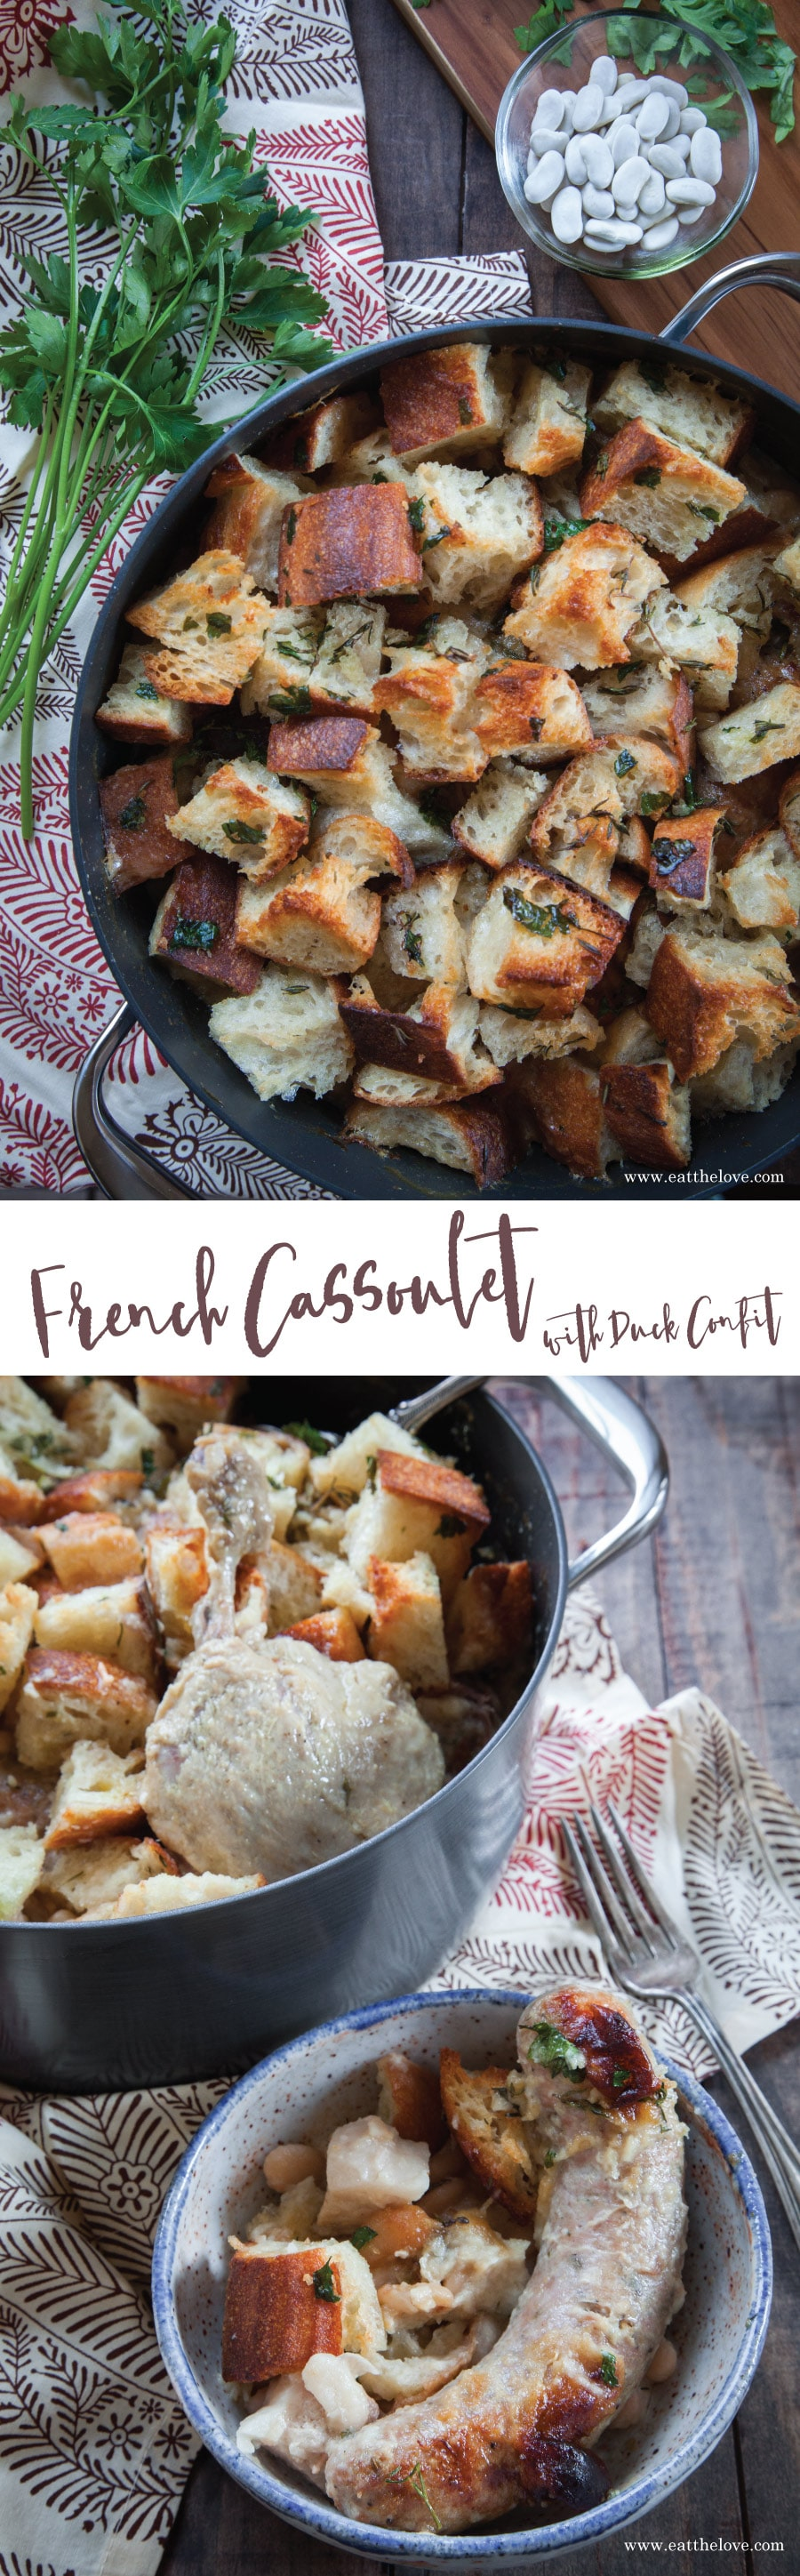 French Cassoulet with Duck Confit. Recipe and photo by Irvin Lin of Eat the Love.